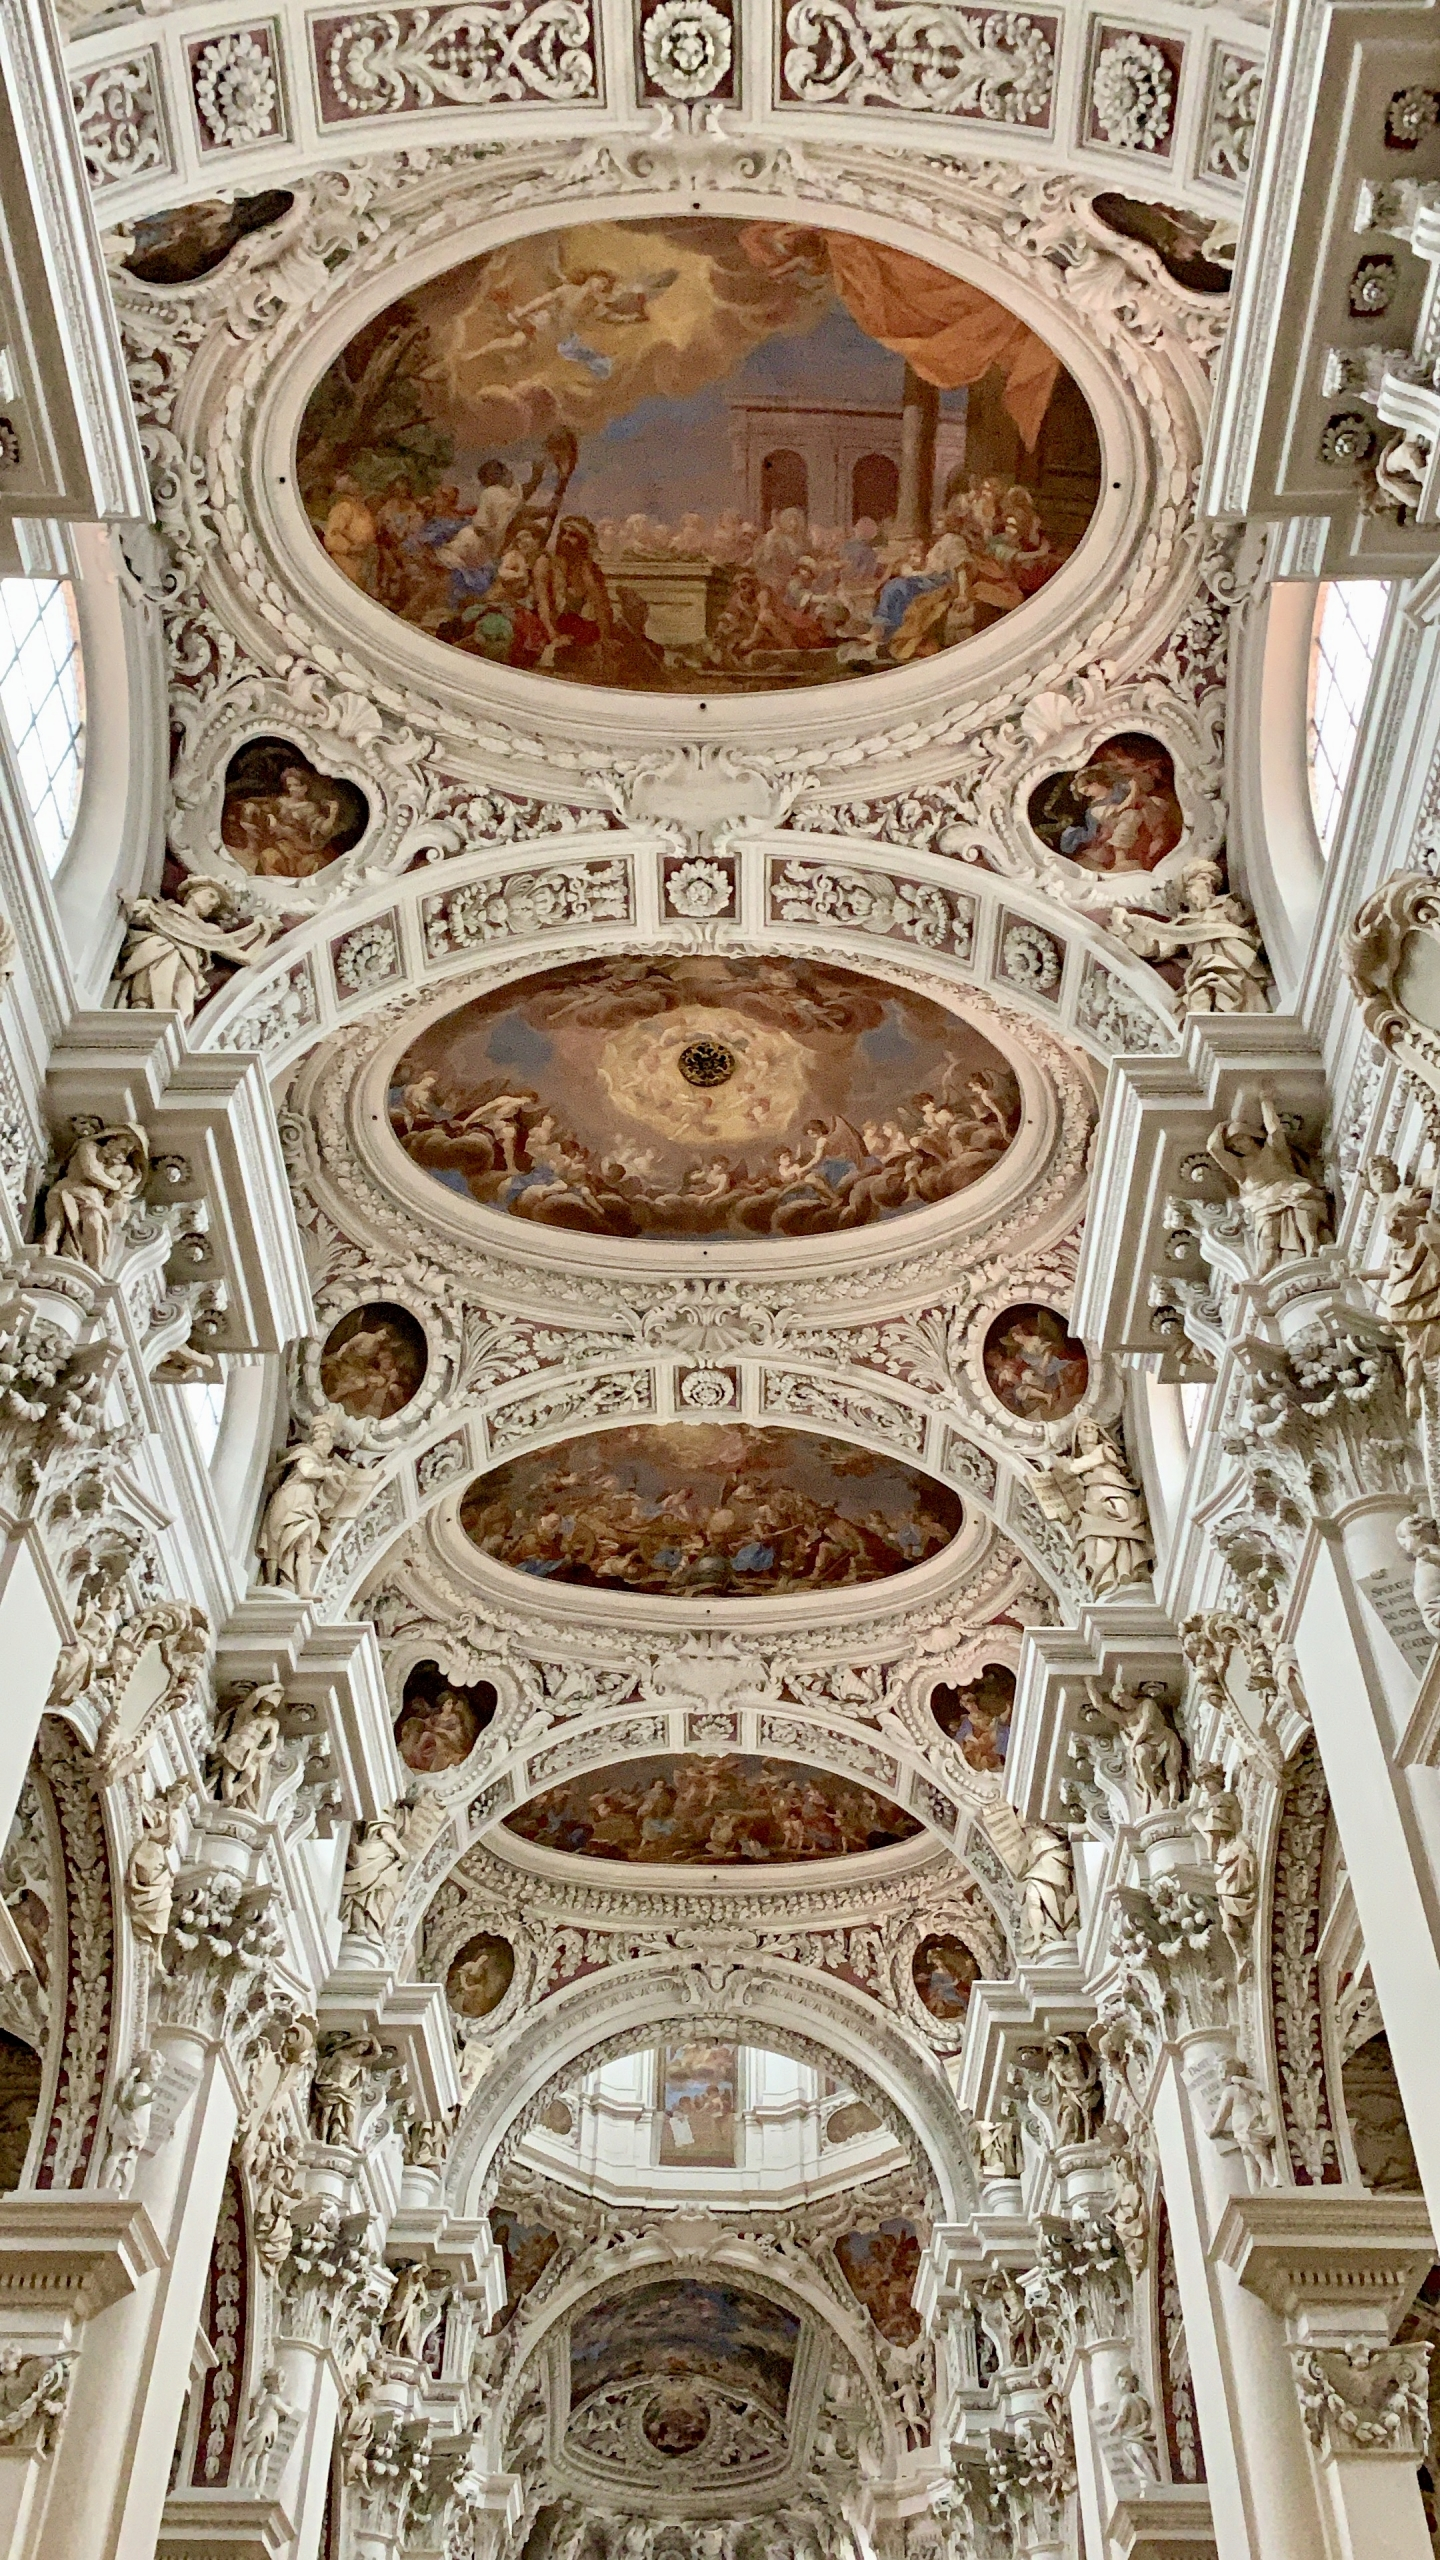 Ceiling of St Stephen's in Passau